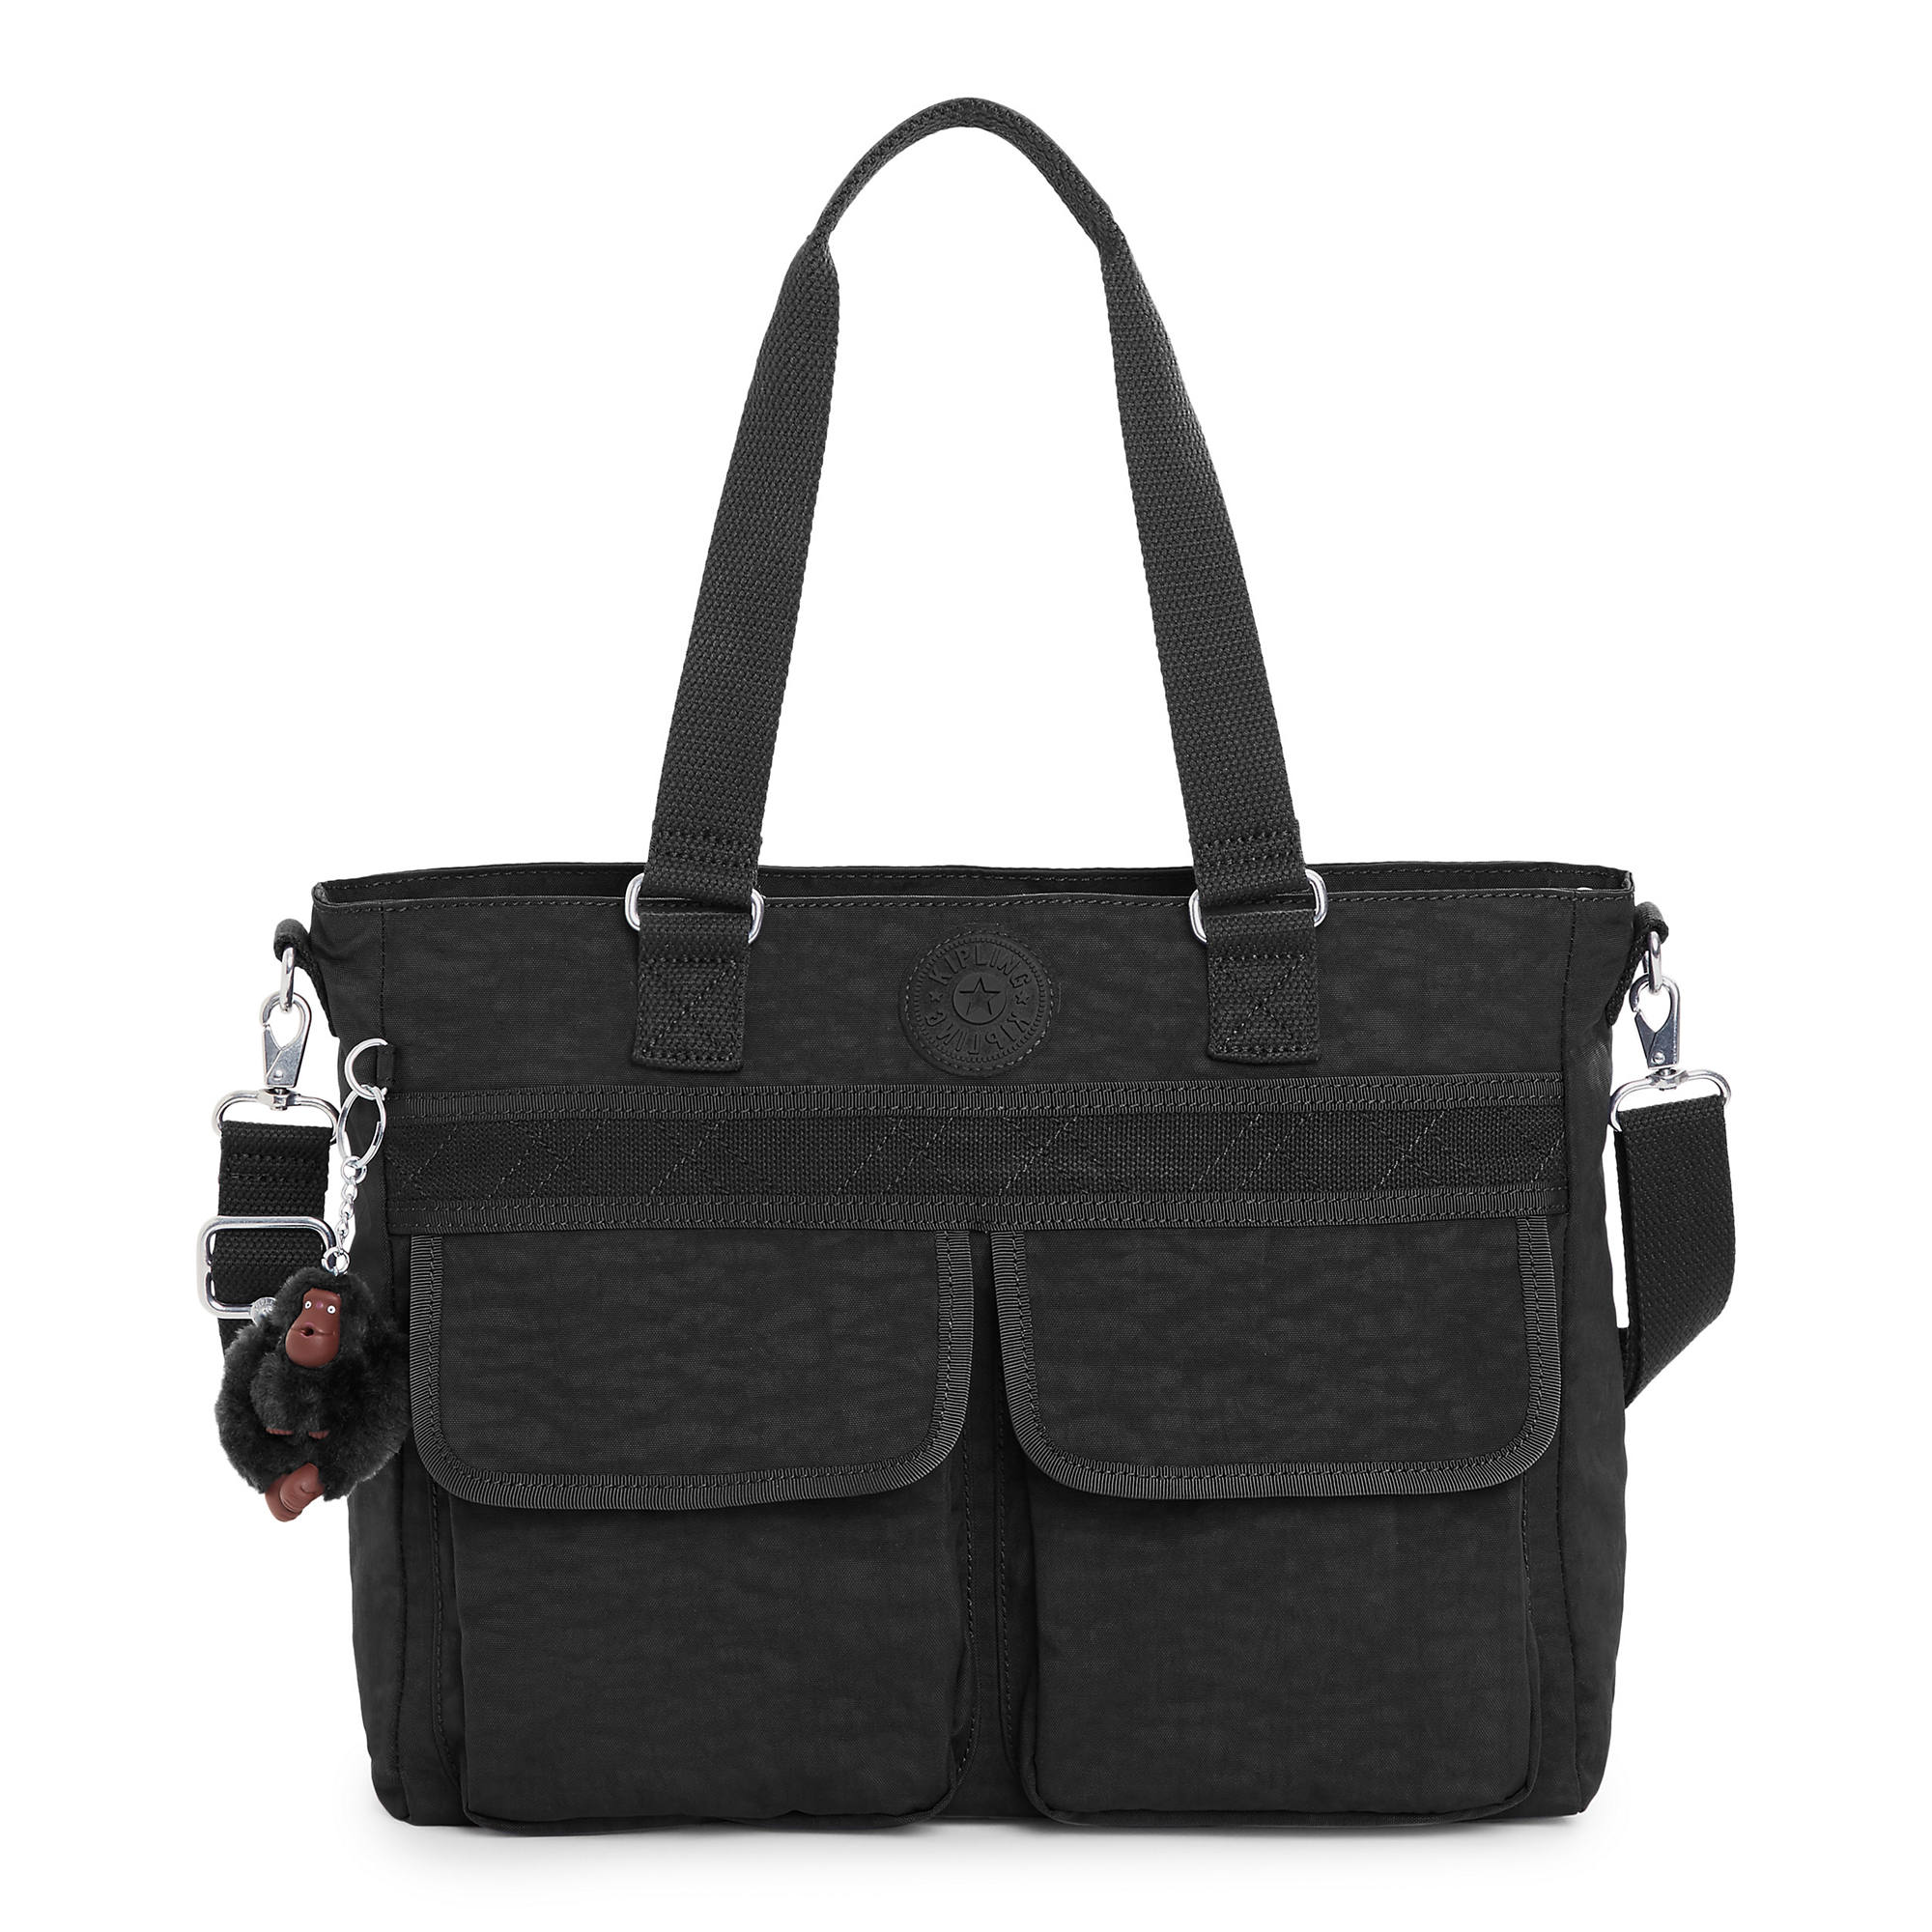 Pia Tote Bag Black Large